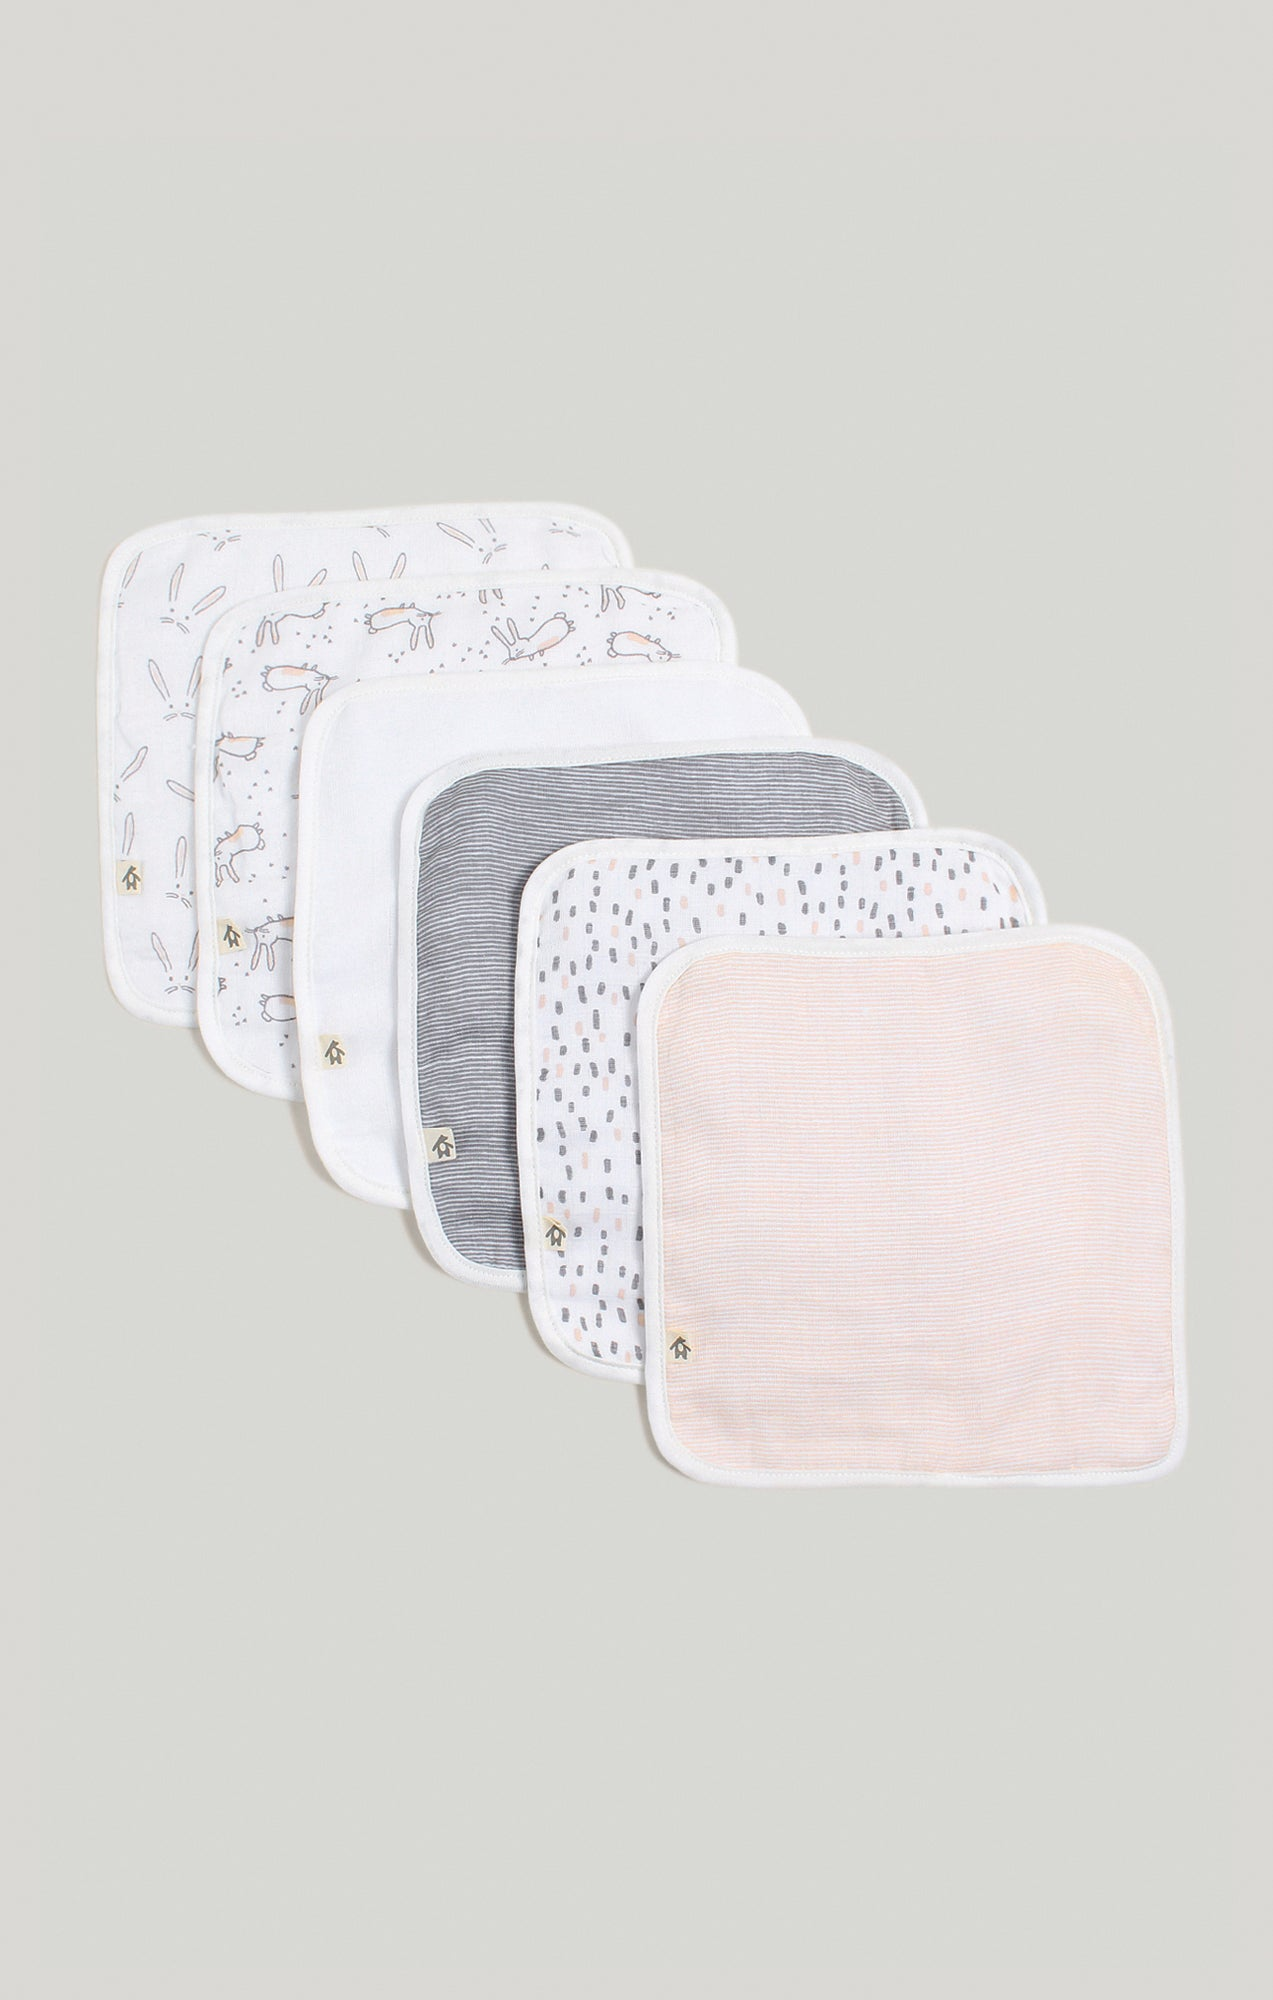 Baby Accessories - 6 Pk of Baby Girl Wash Cloths